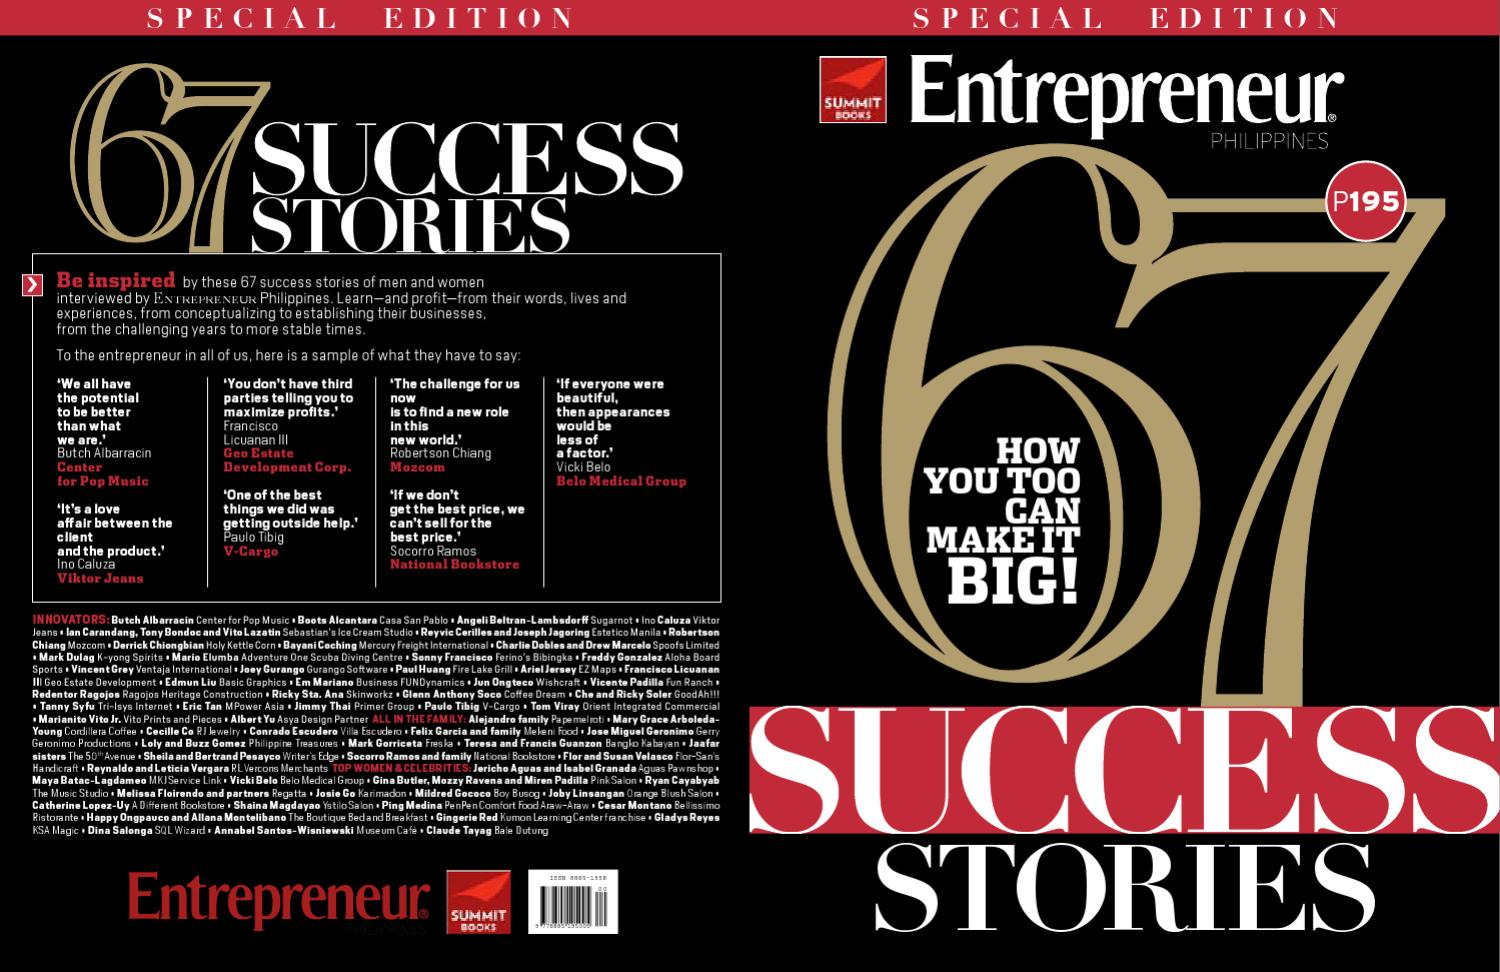 029a1d38a2108 67 Success Stories by chez andrade - issuu